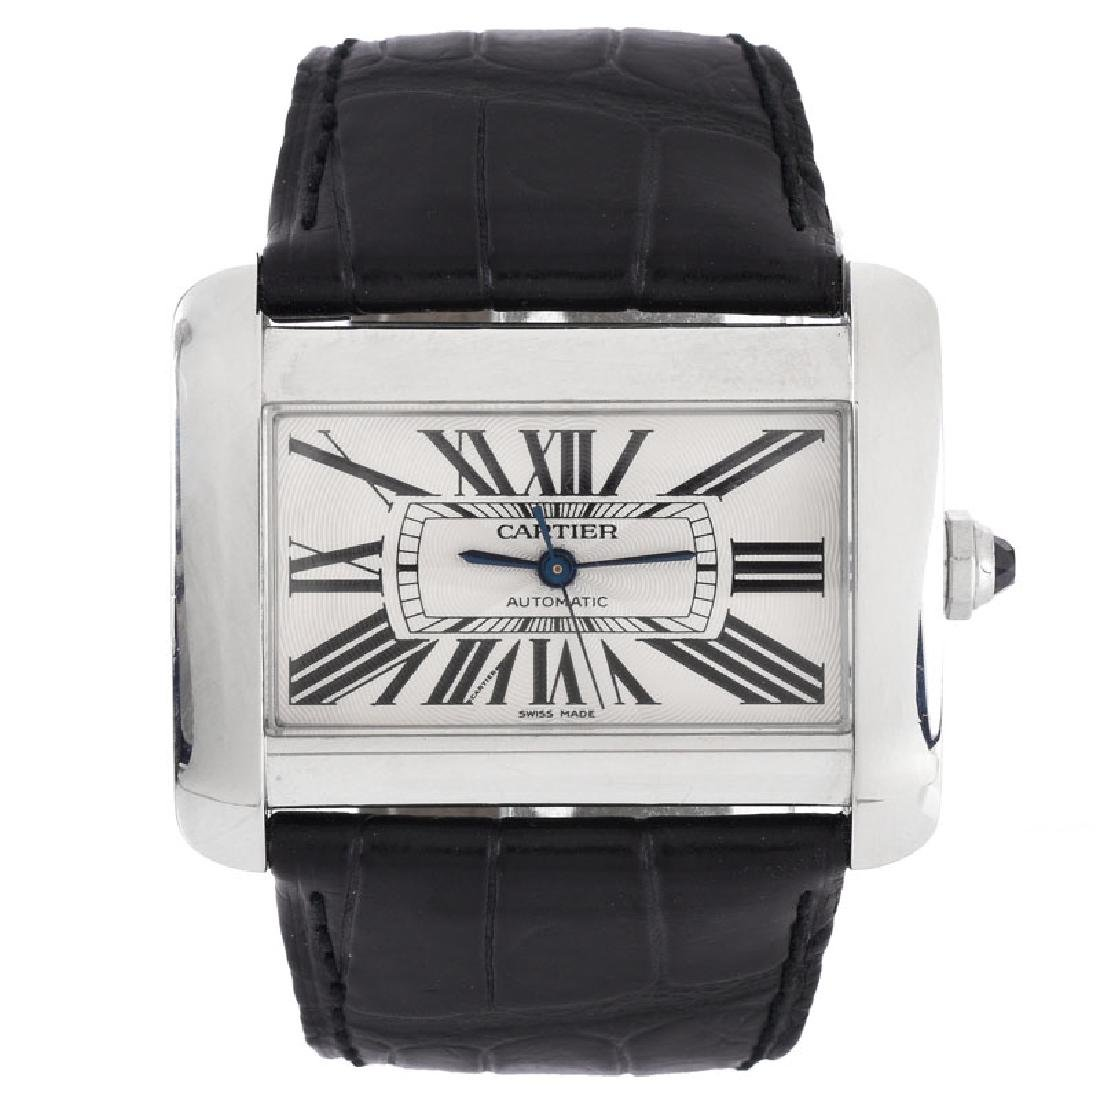 Two (2) Lady's Cartier Watches - 2